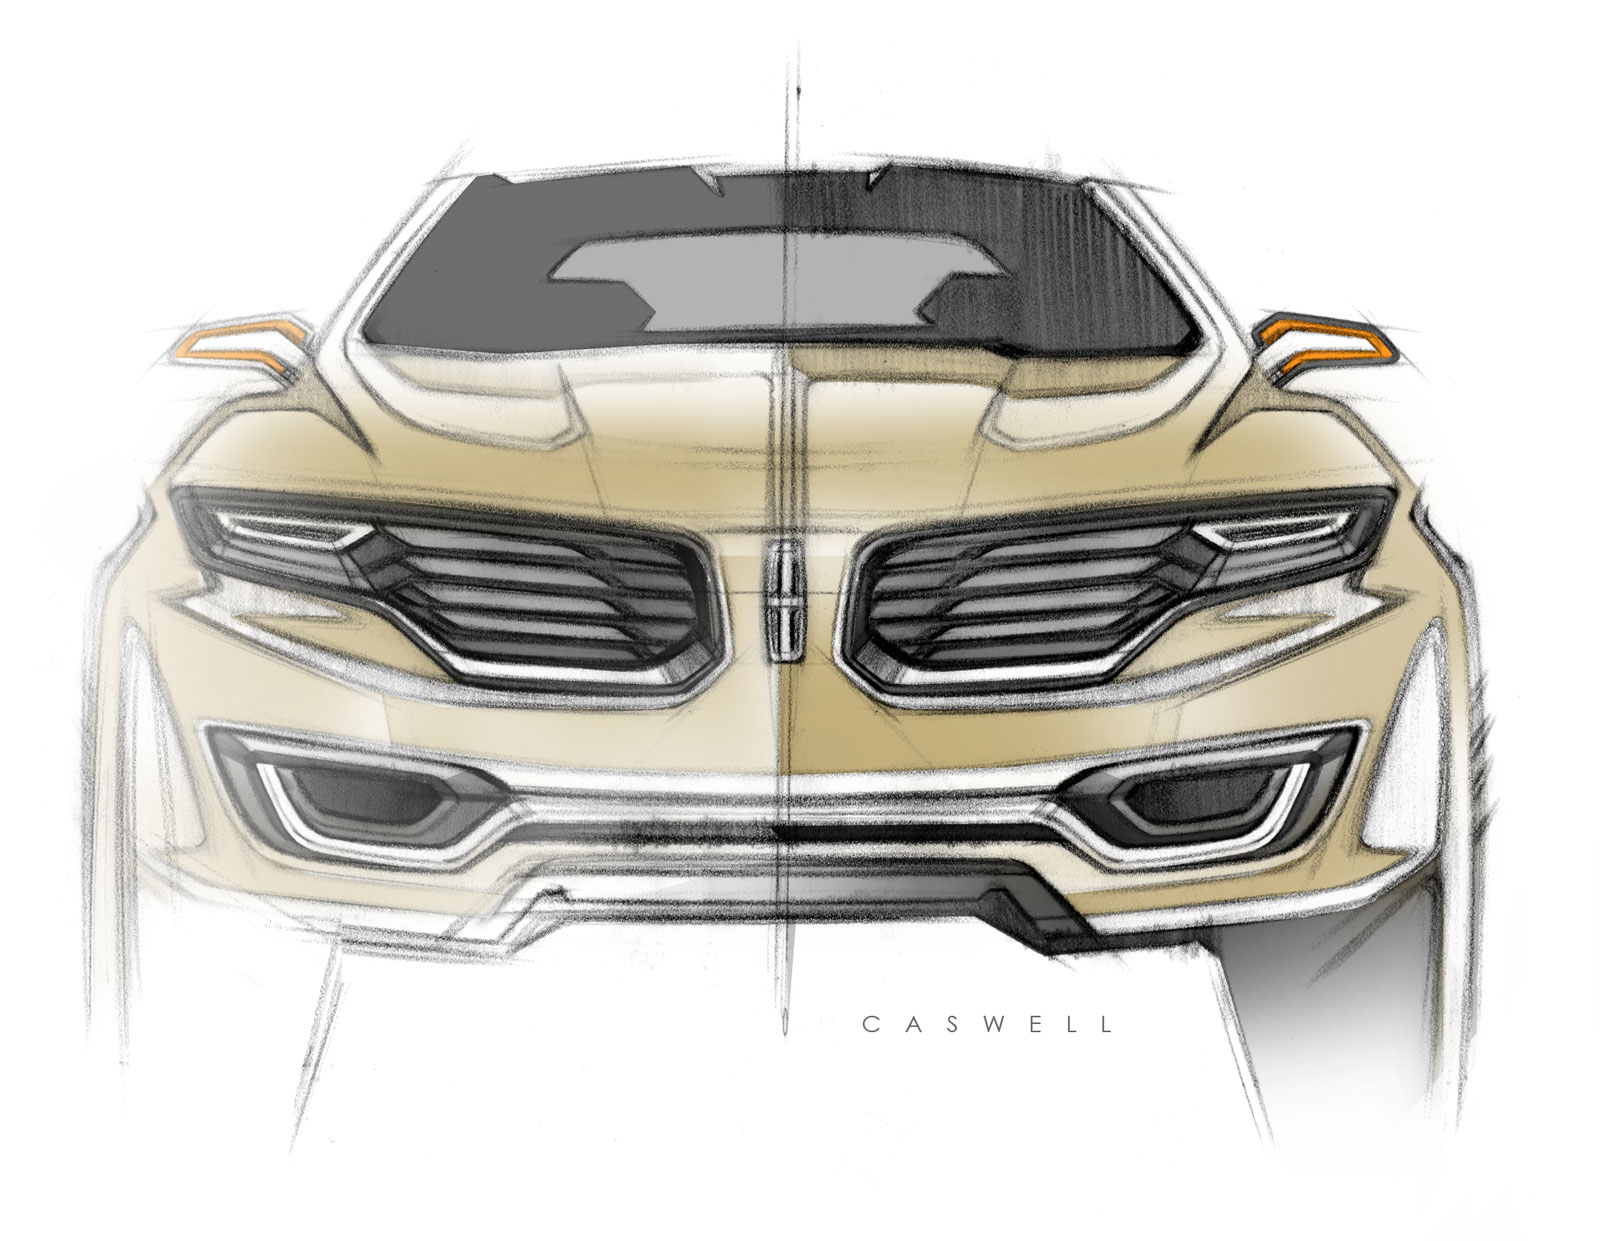 lincoln mkx concept front view design sketch car body